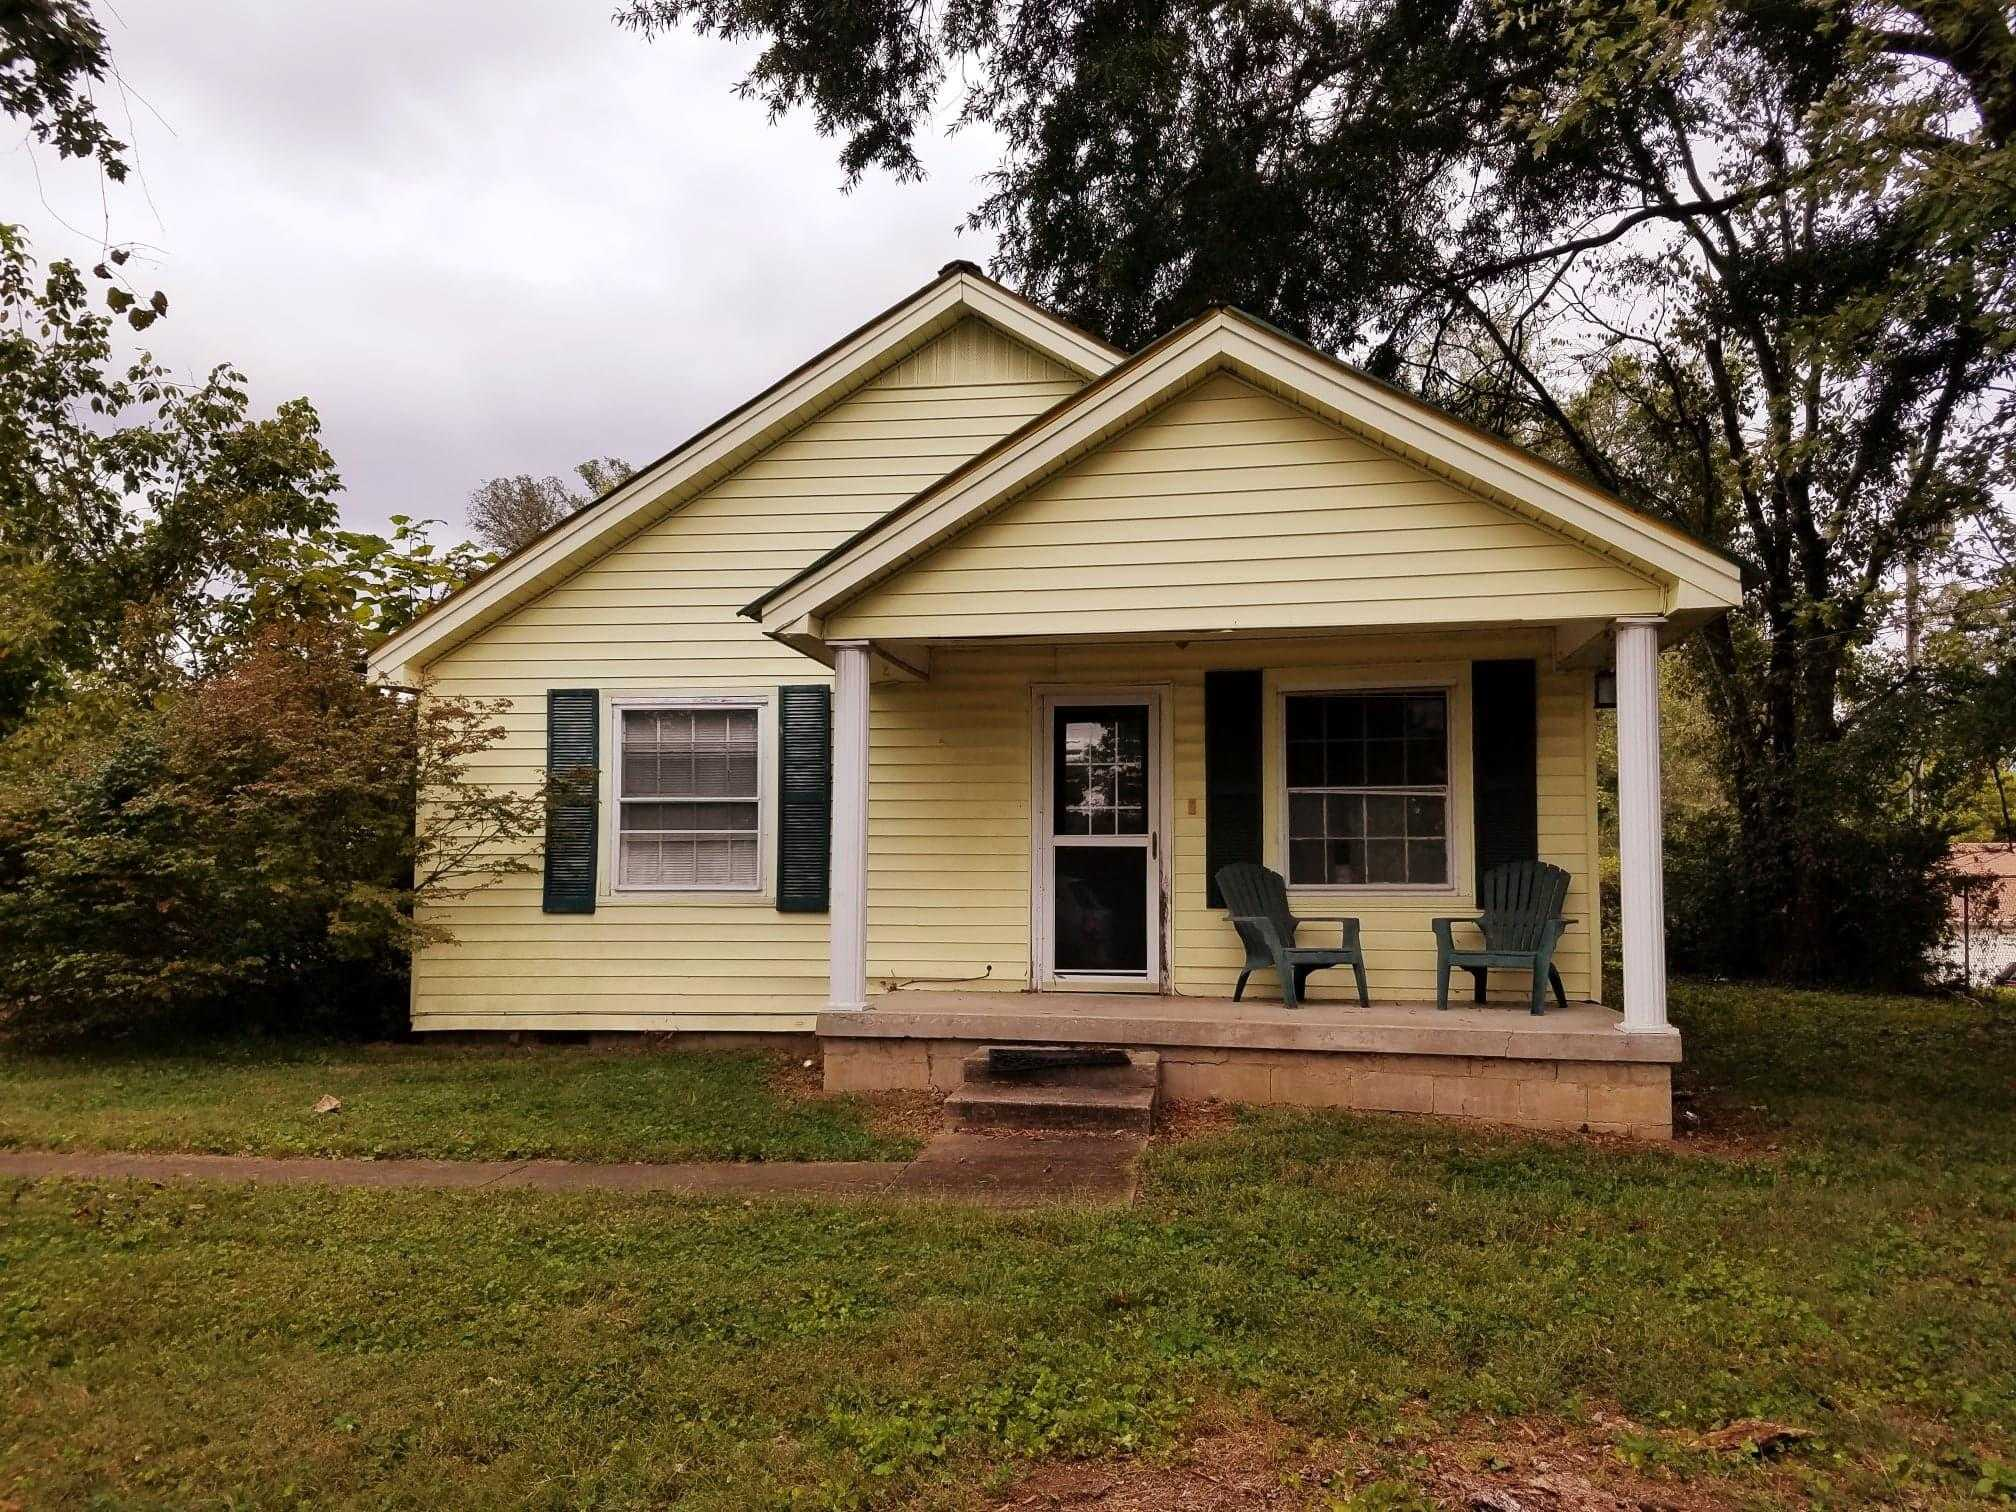 $95,000 - 4Br/2Ba -  for Sale in Trail, Woodbury